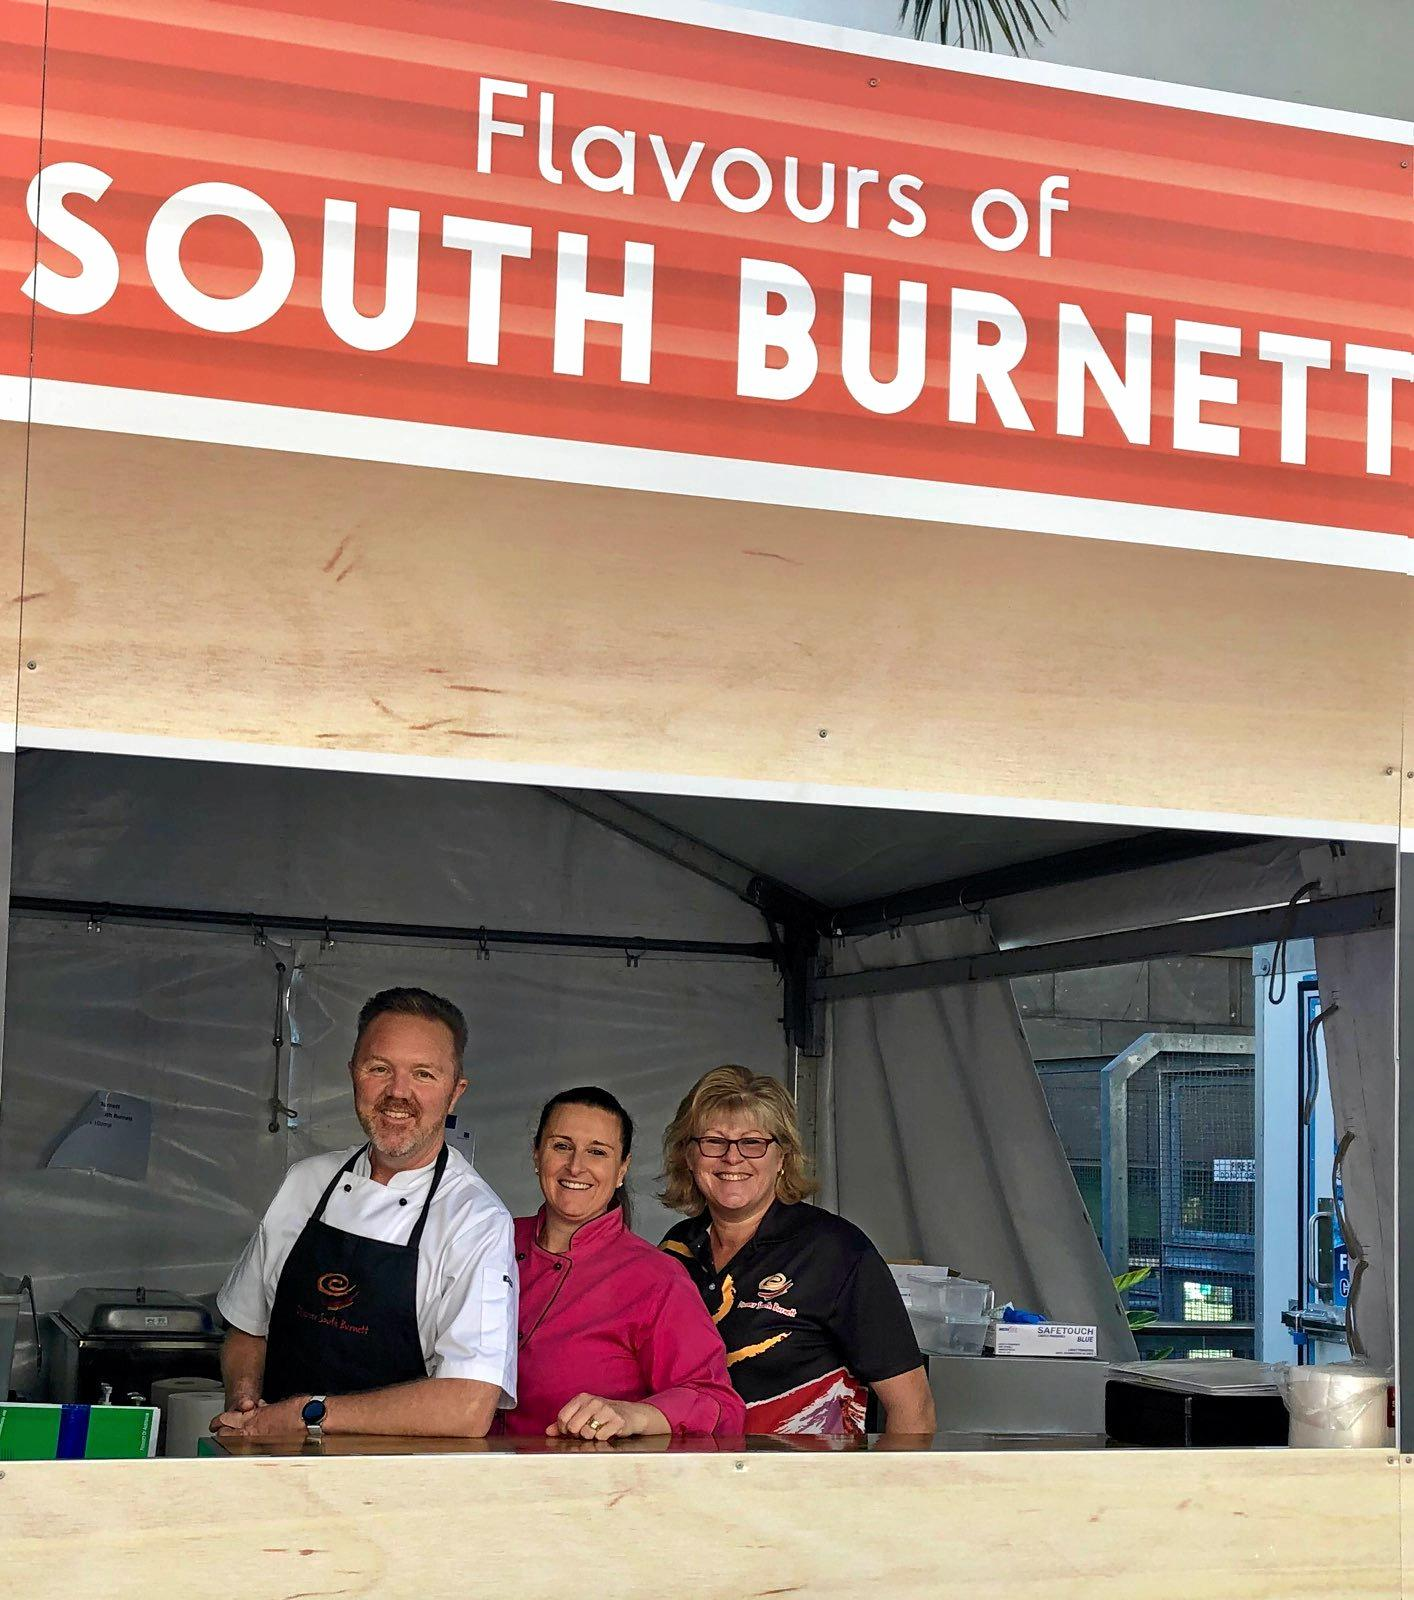 Jason Ford, Roberta Schablon, and Karen Ford cooking at the South Burnett stall at Regional Flavours.